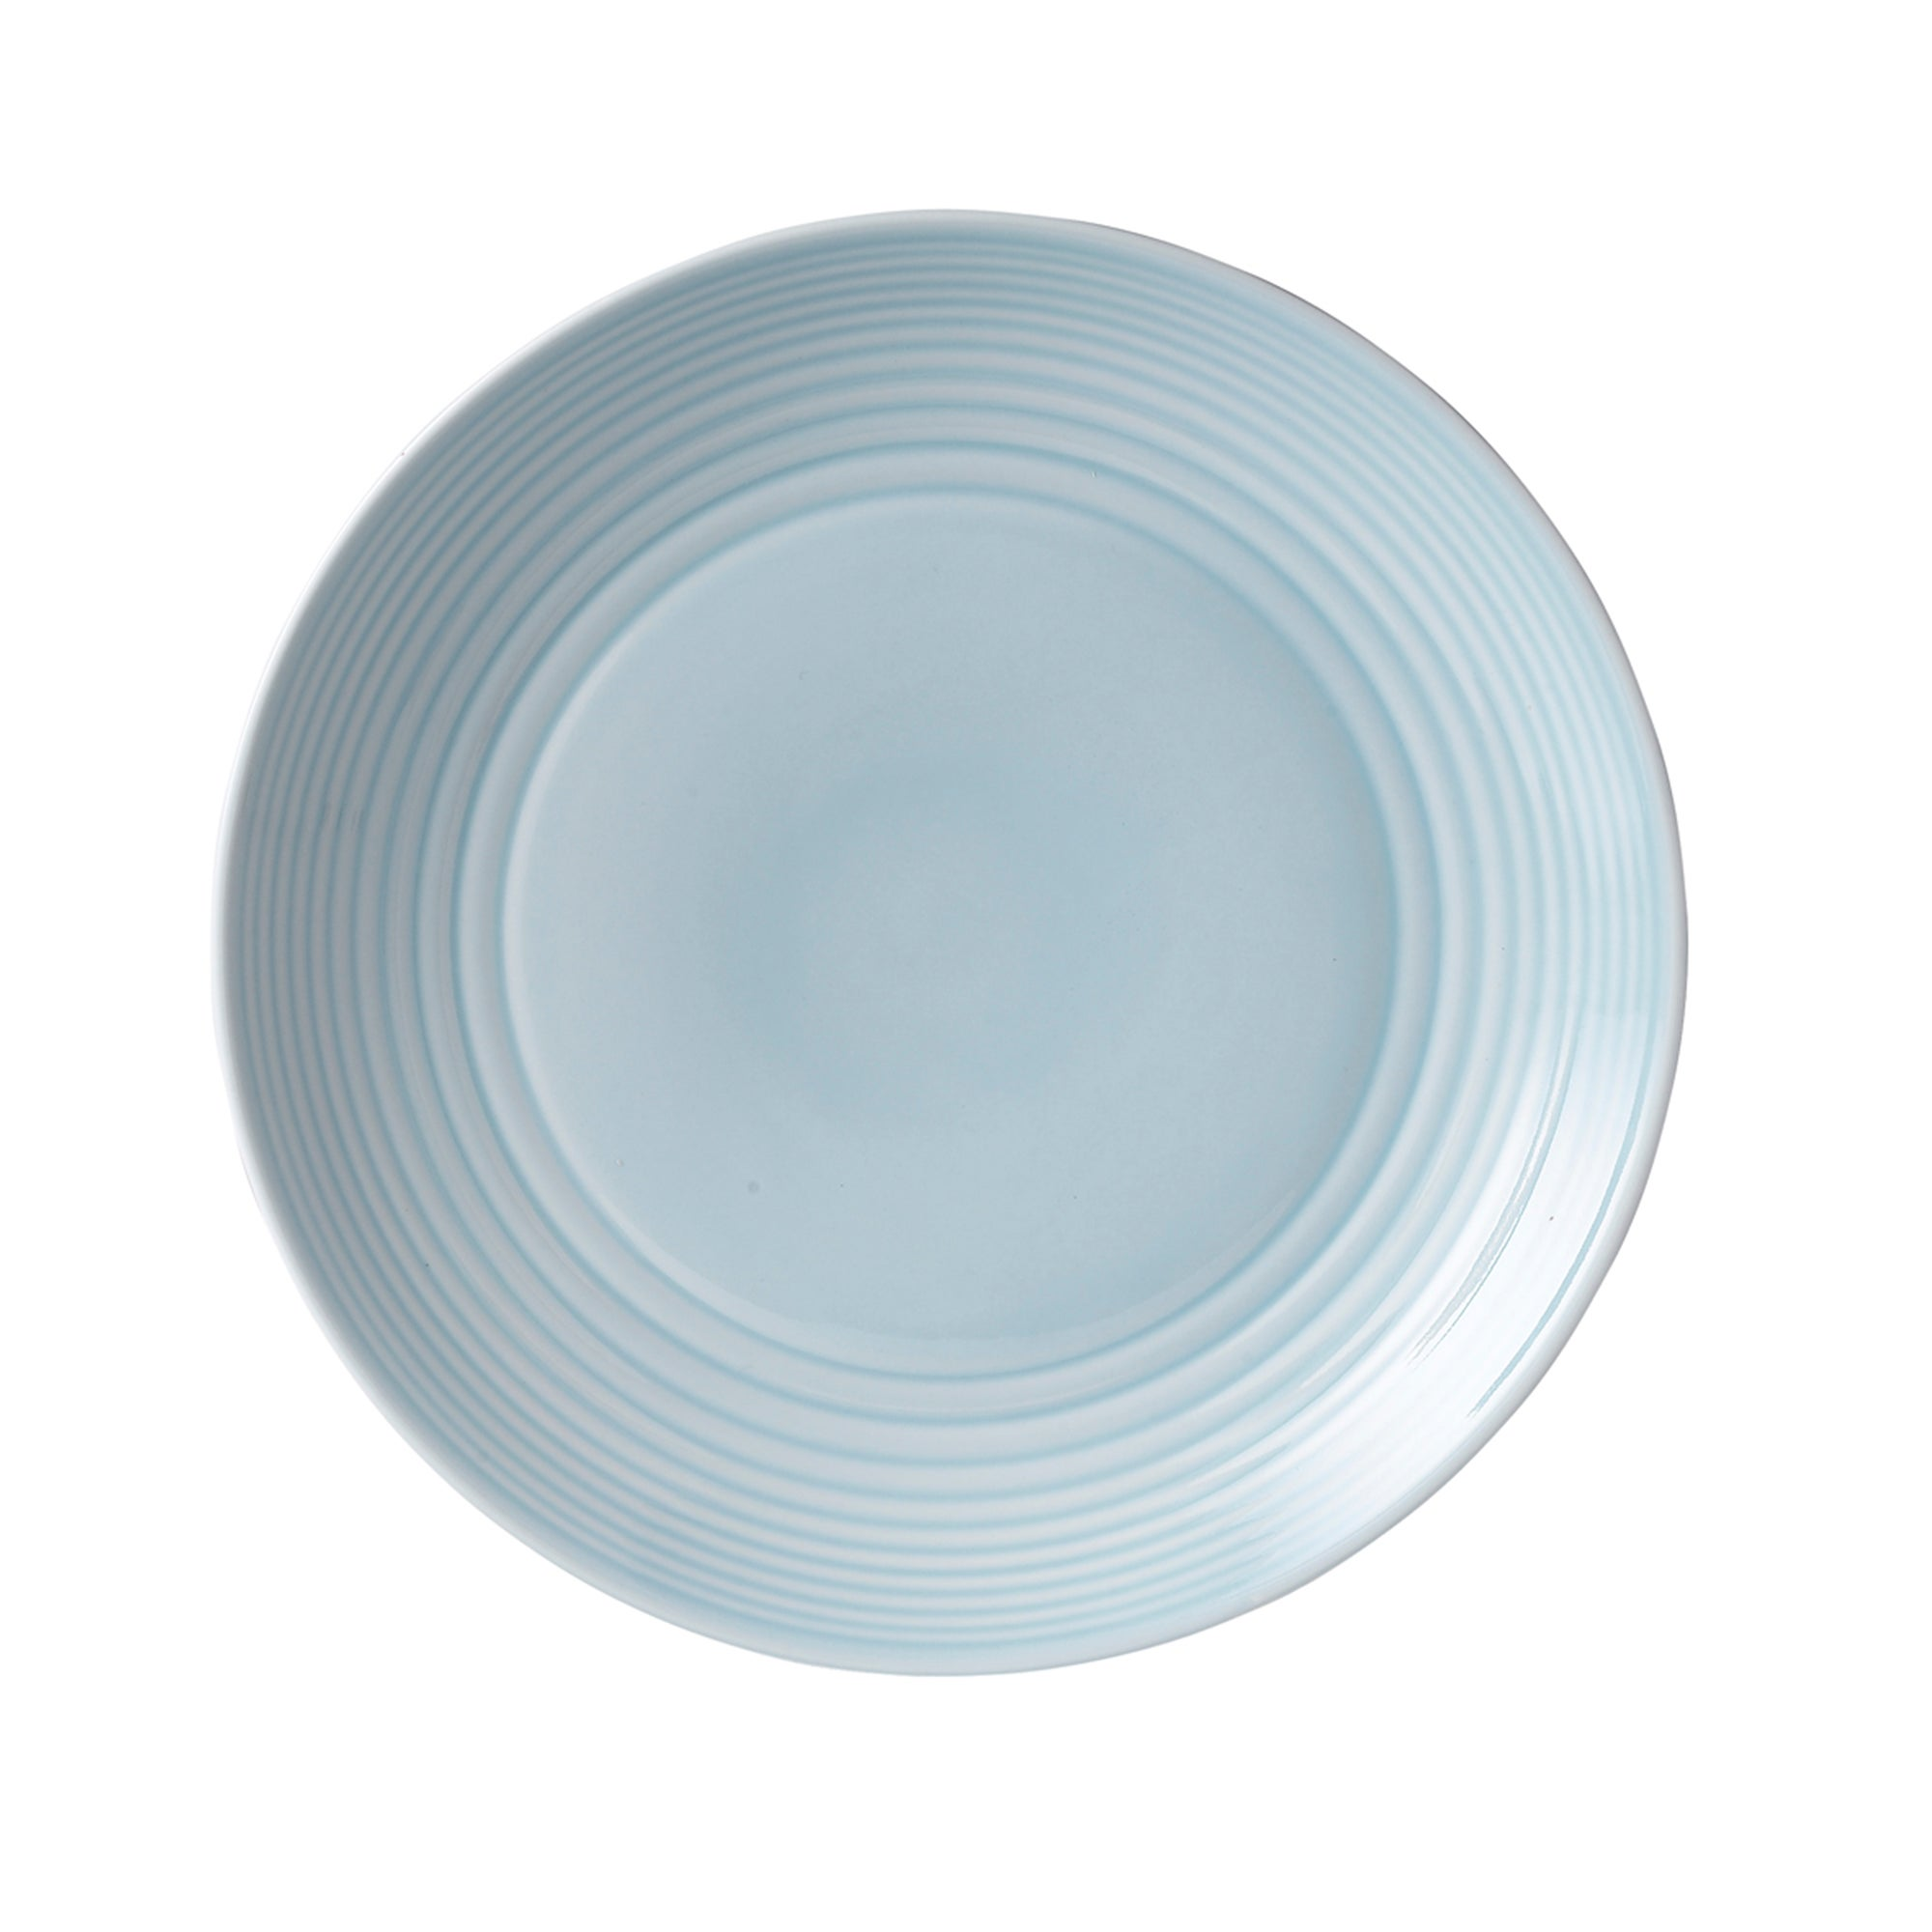 Blue Gordon Ramsay Maze Collection Dinner Plate